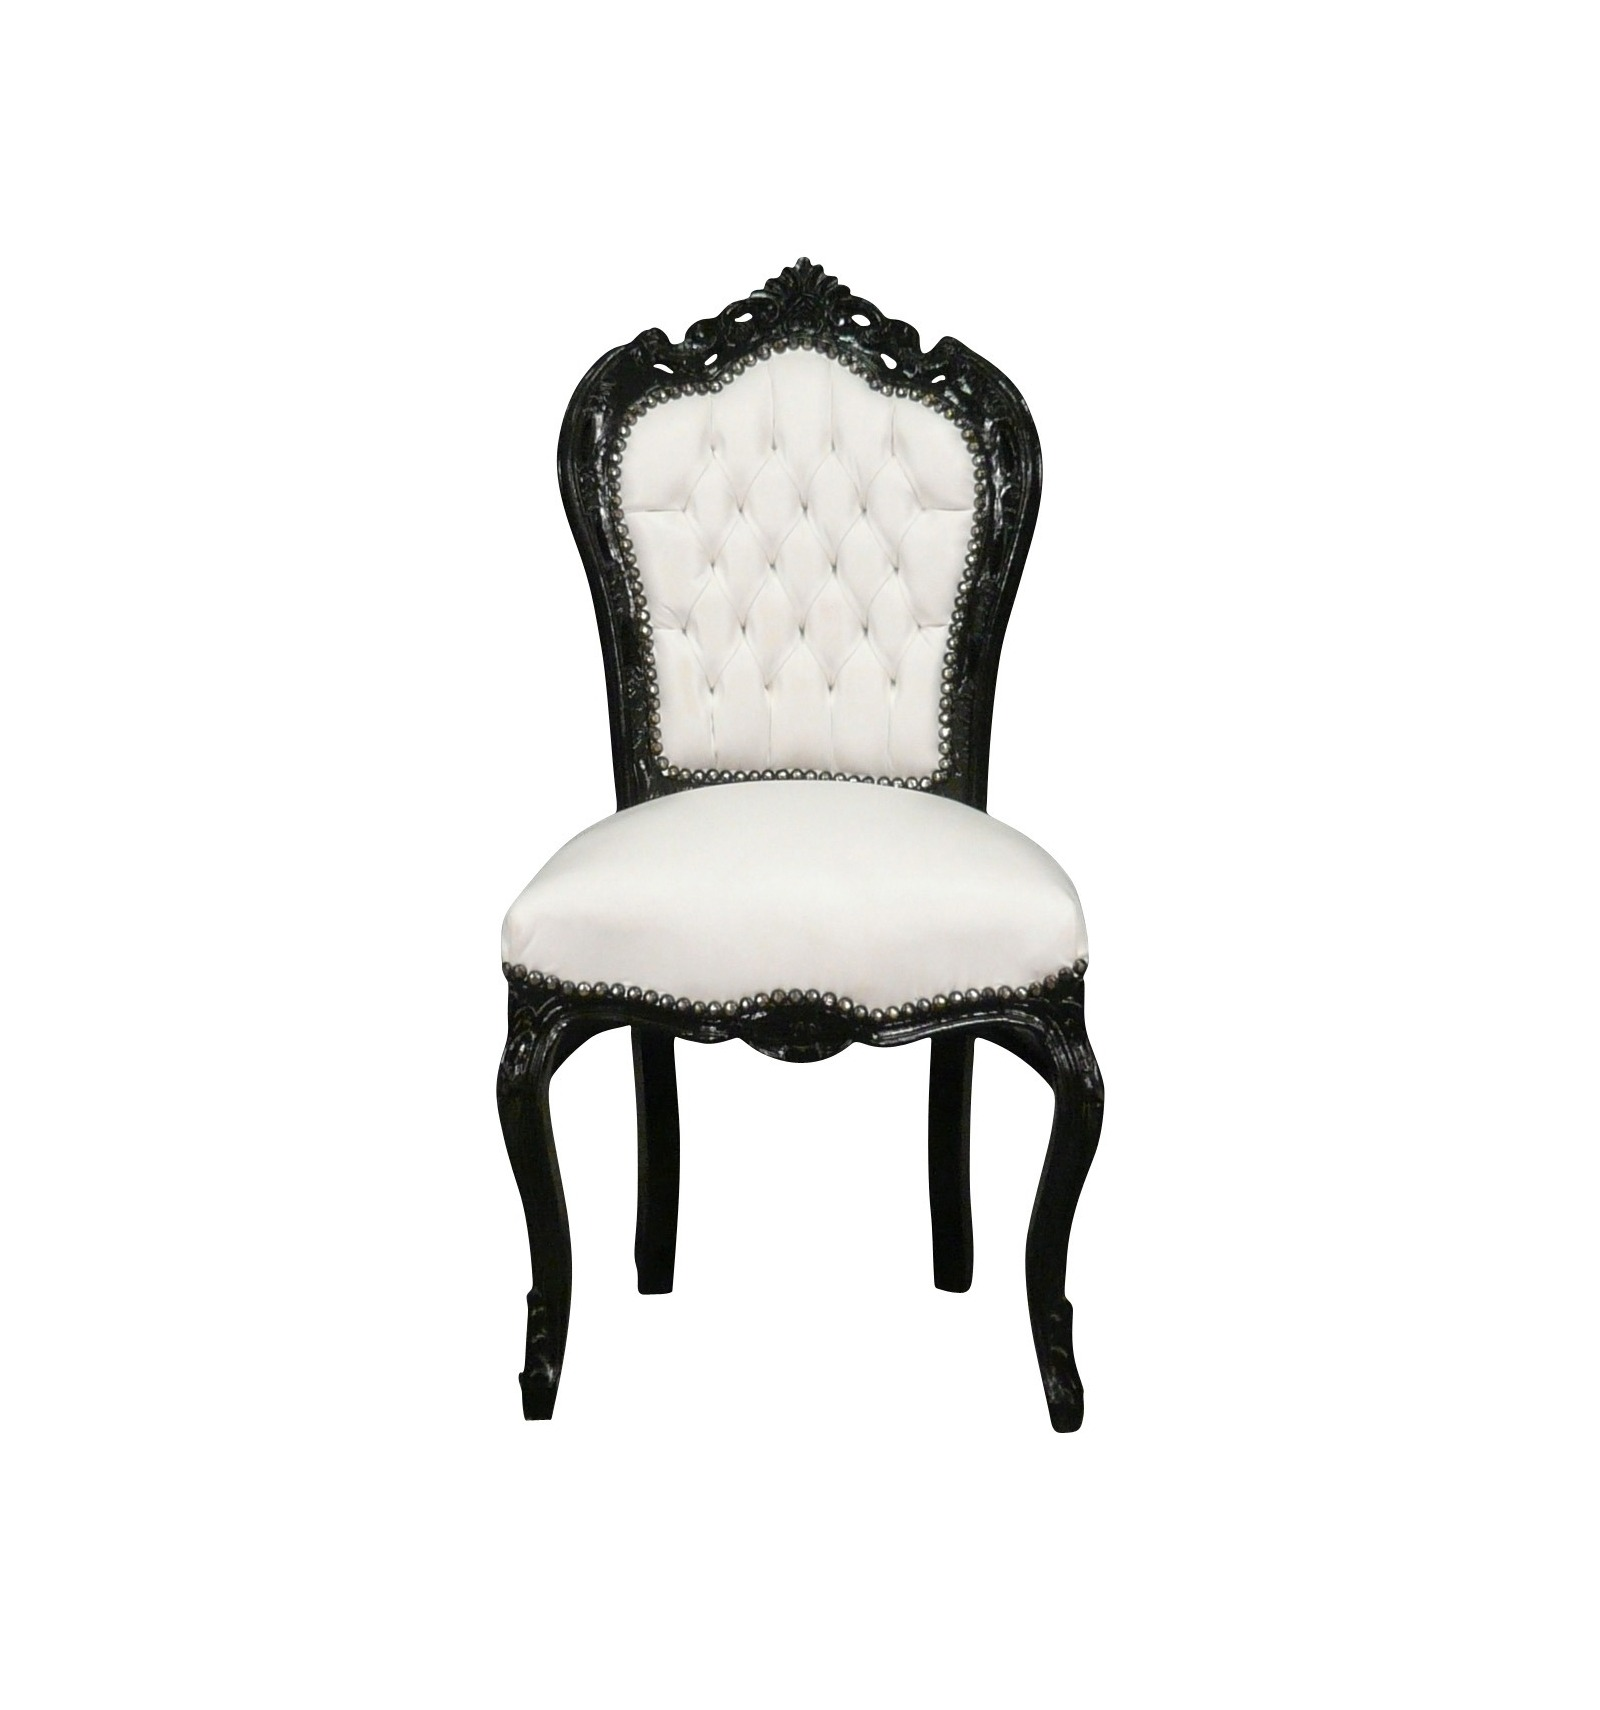 Baroque Chair Black-and-white